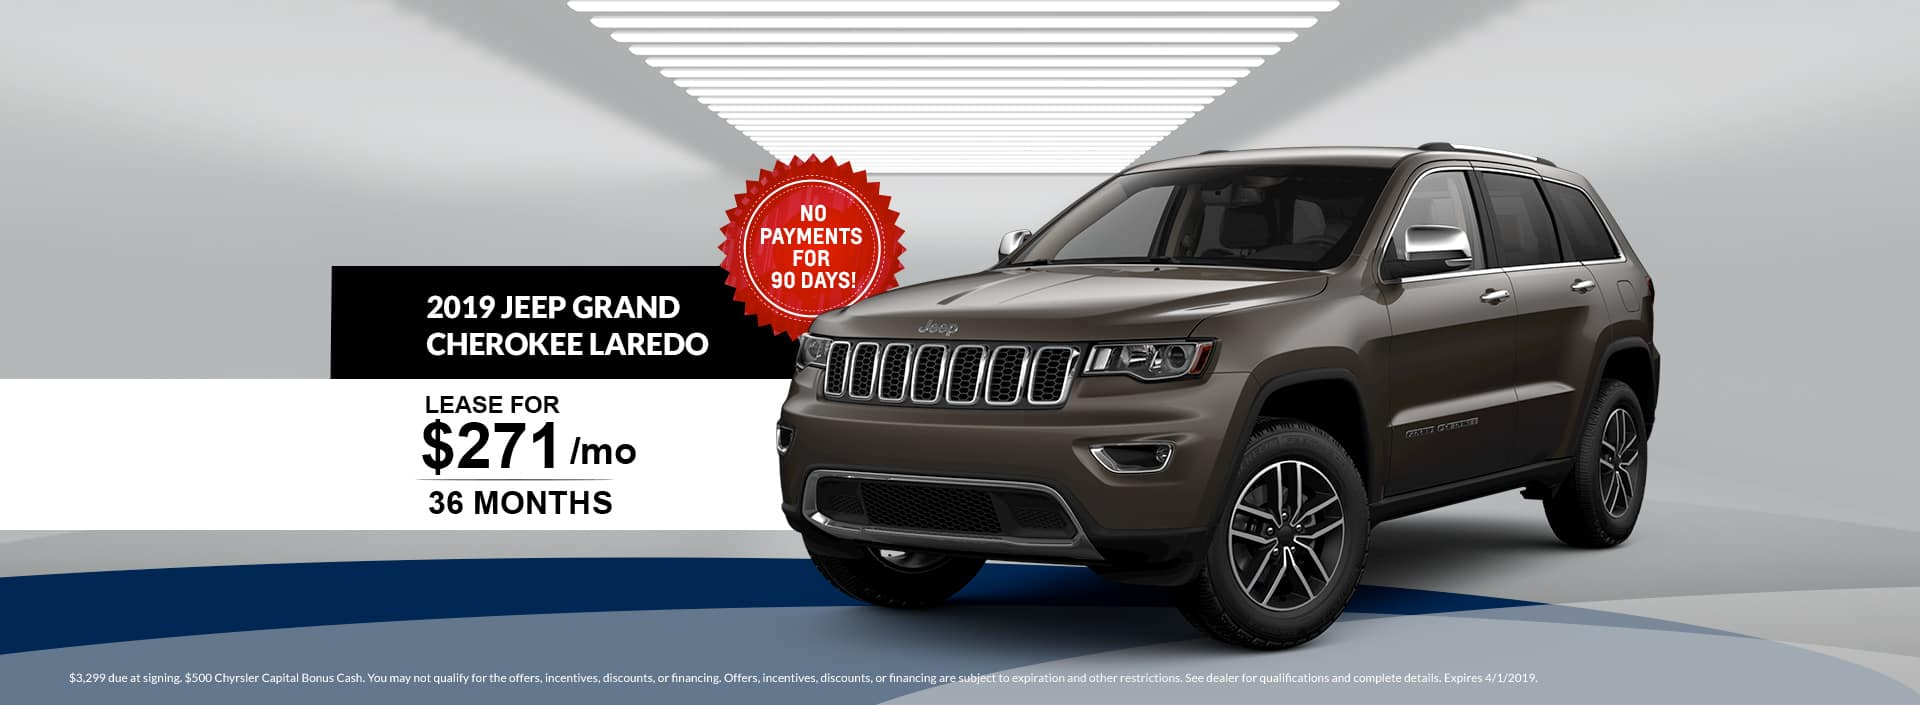 2019 Jeep Grand Cherokee Laredo Special in Waseca, MN